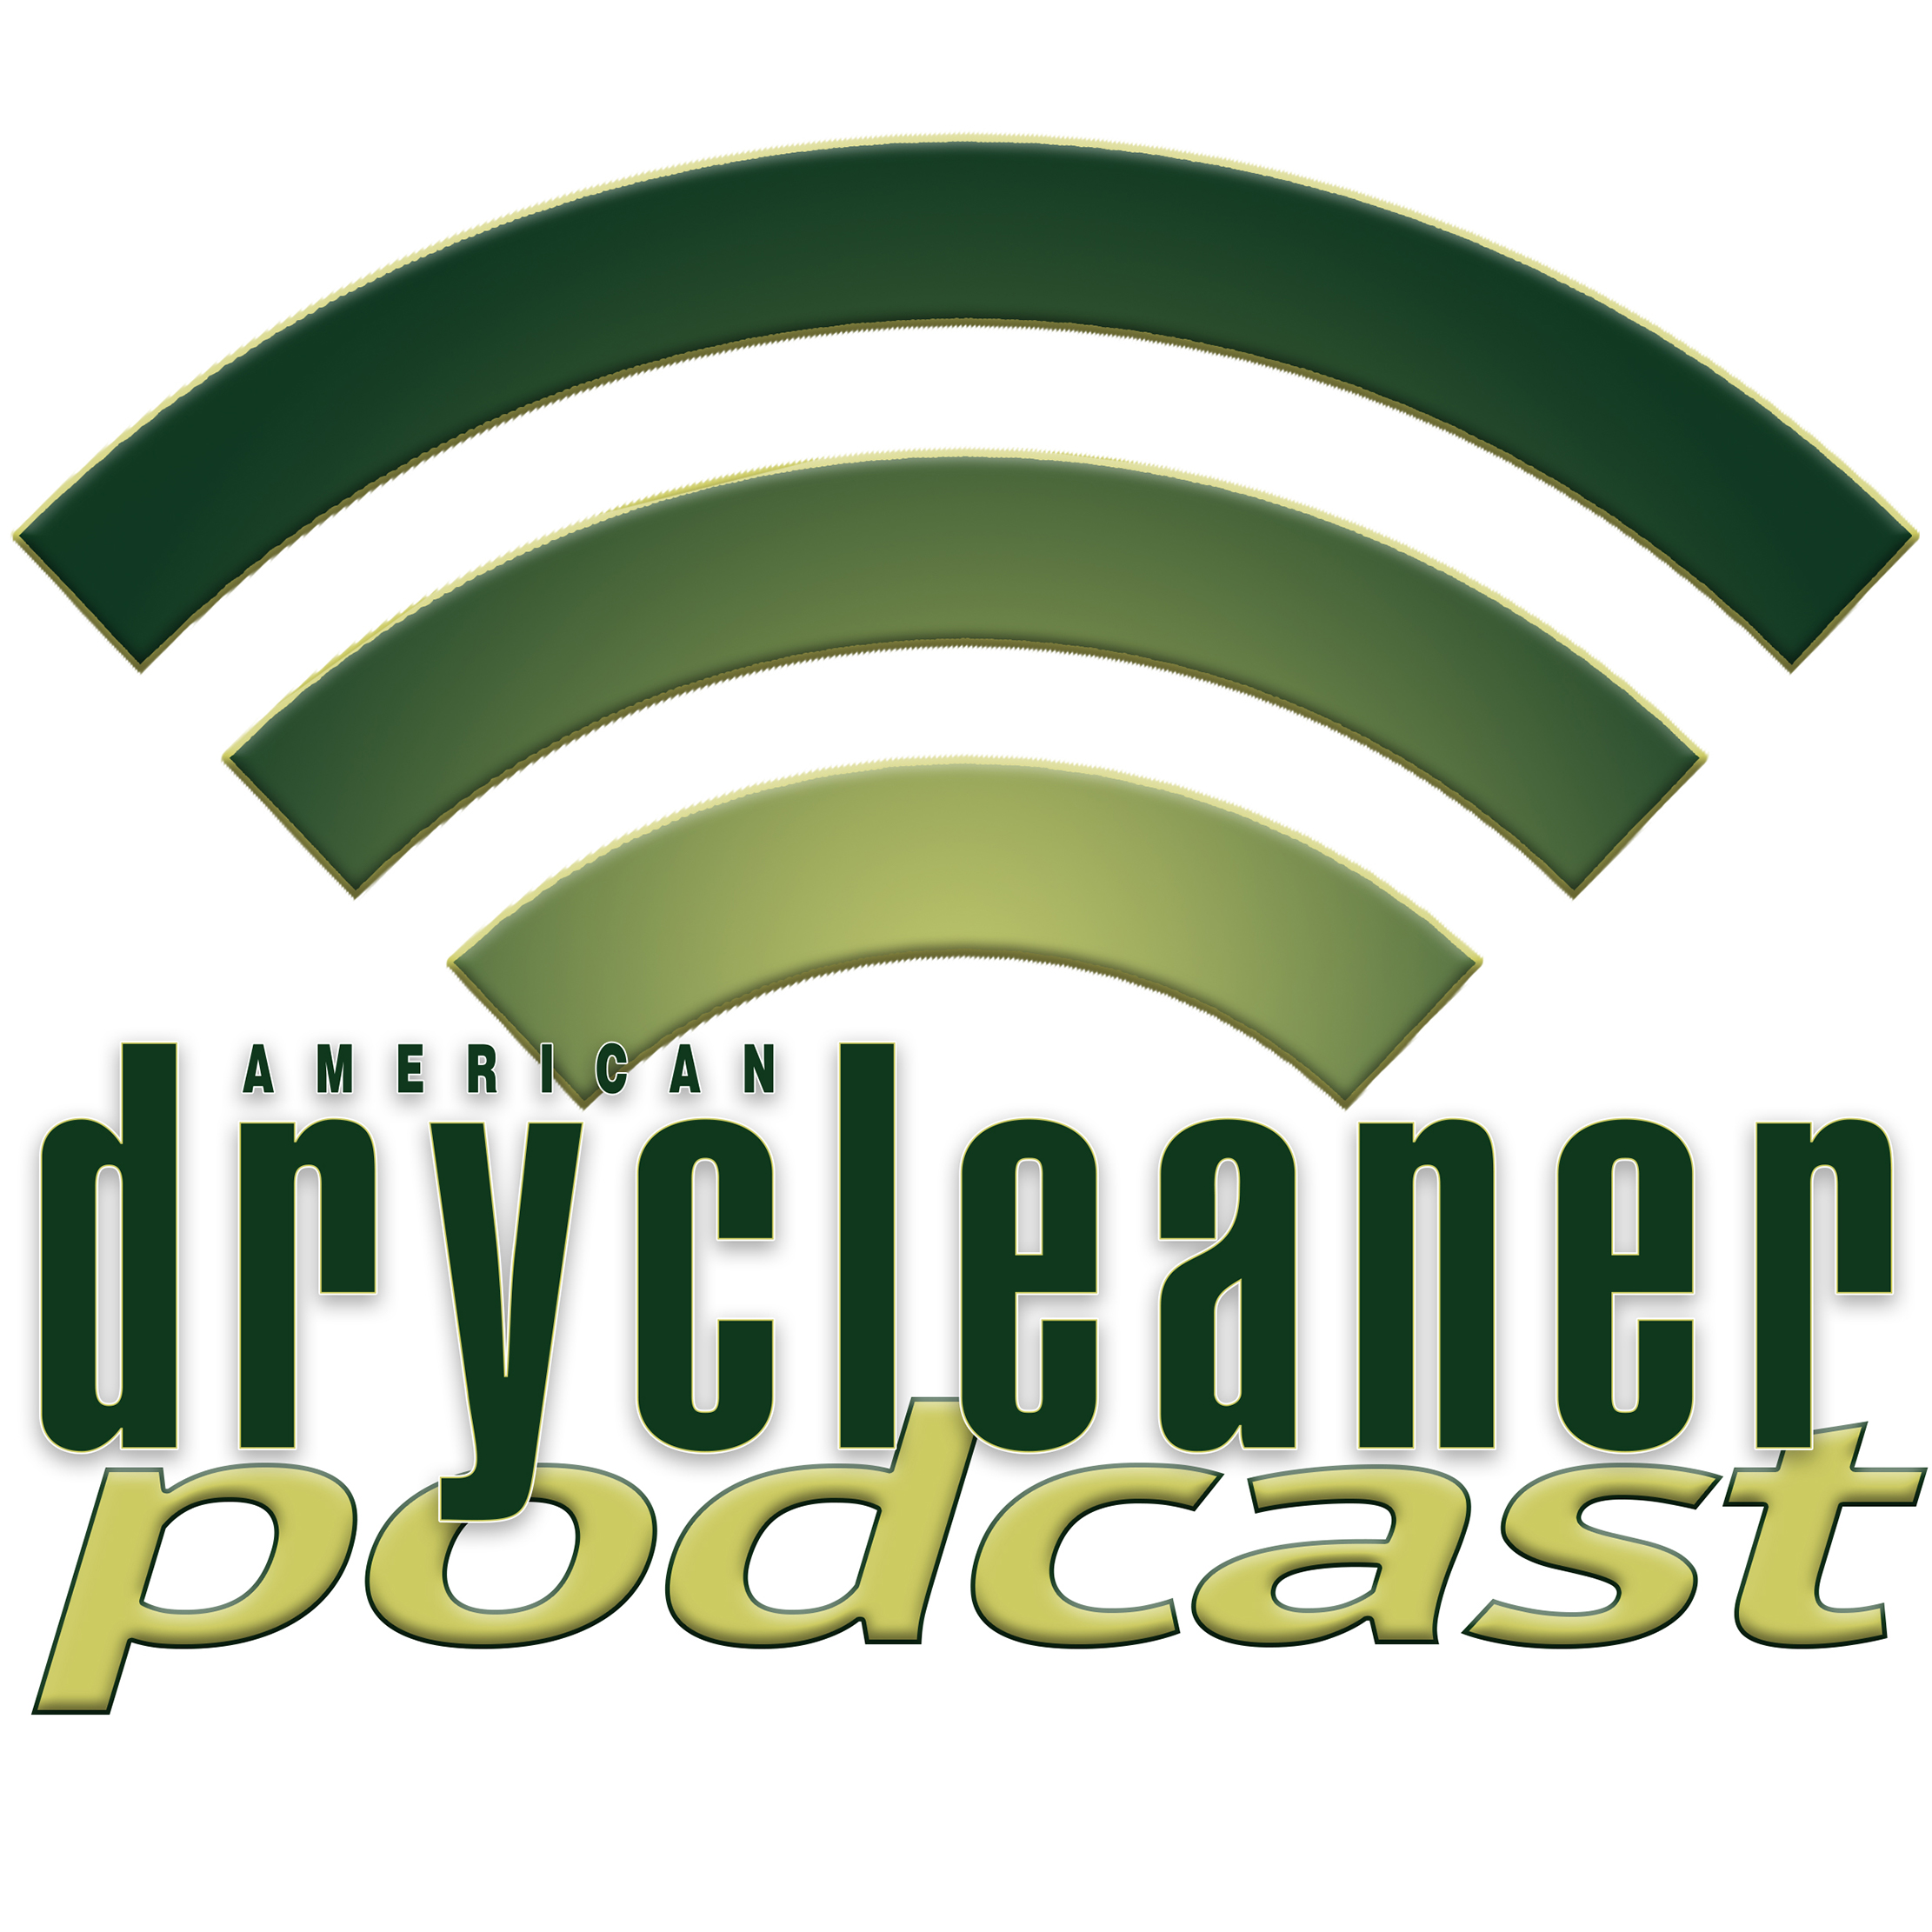 The American Drycleaner Podcast